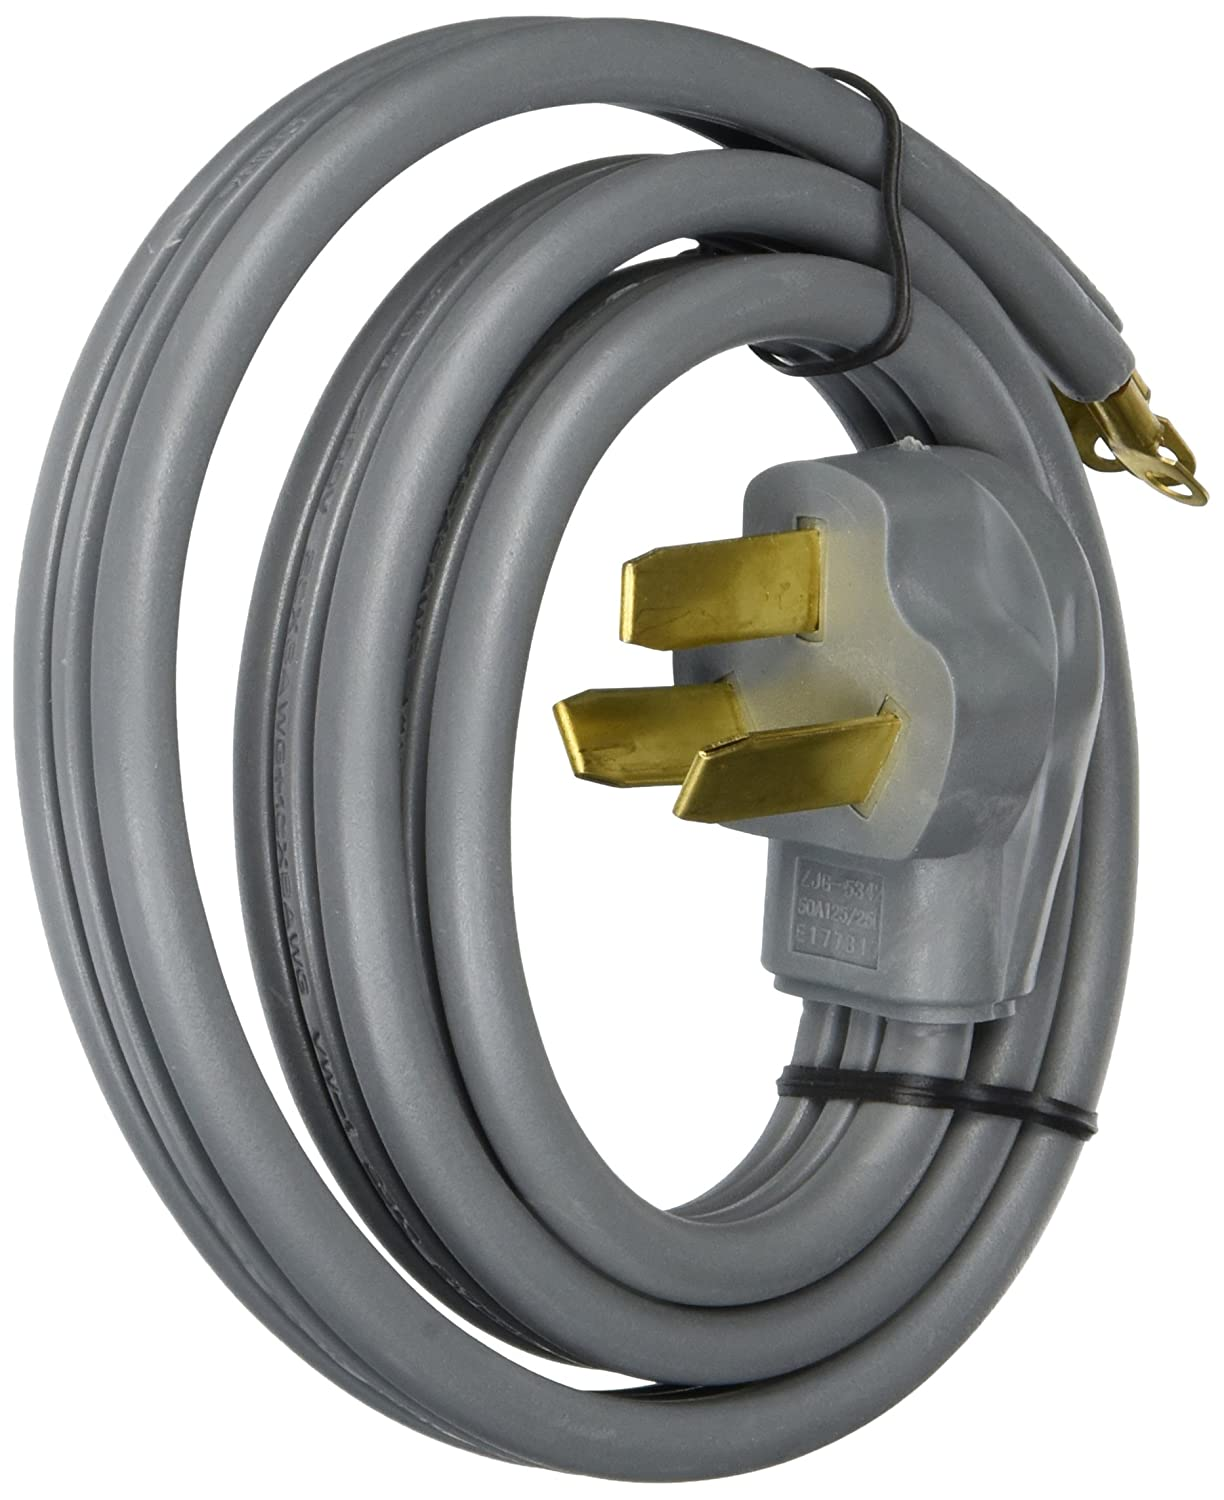 Park Supply of America 84601 Range Electrical Cord